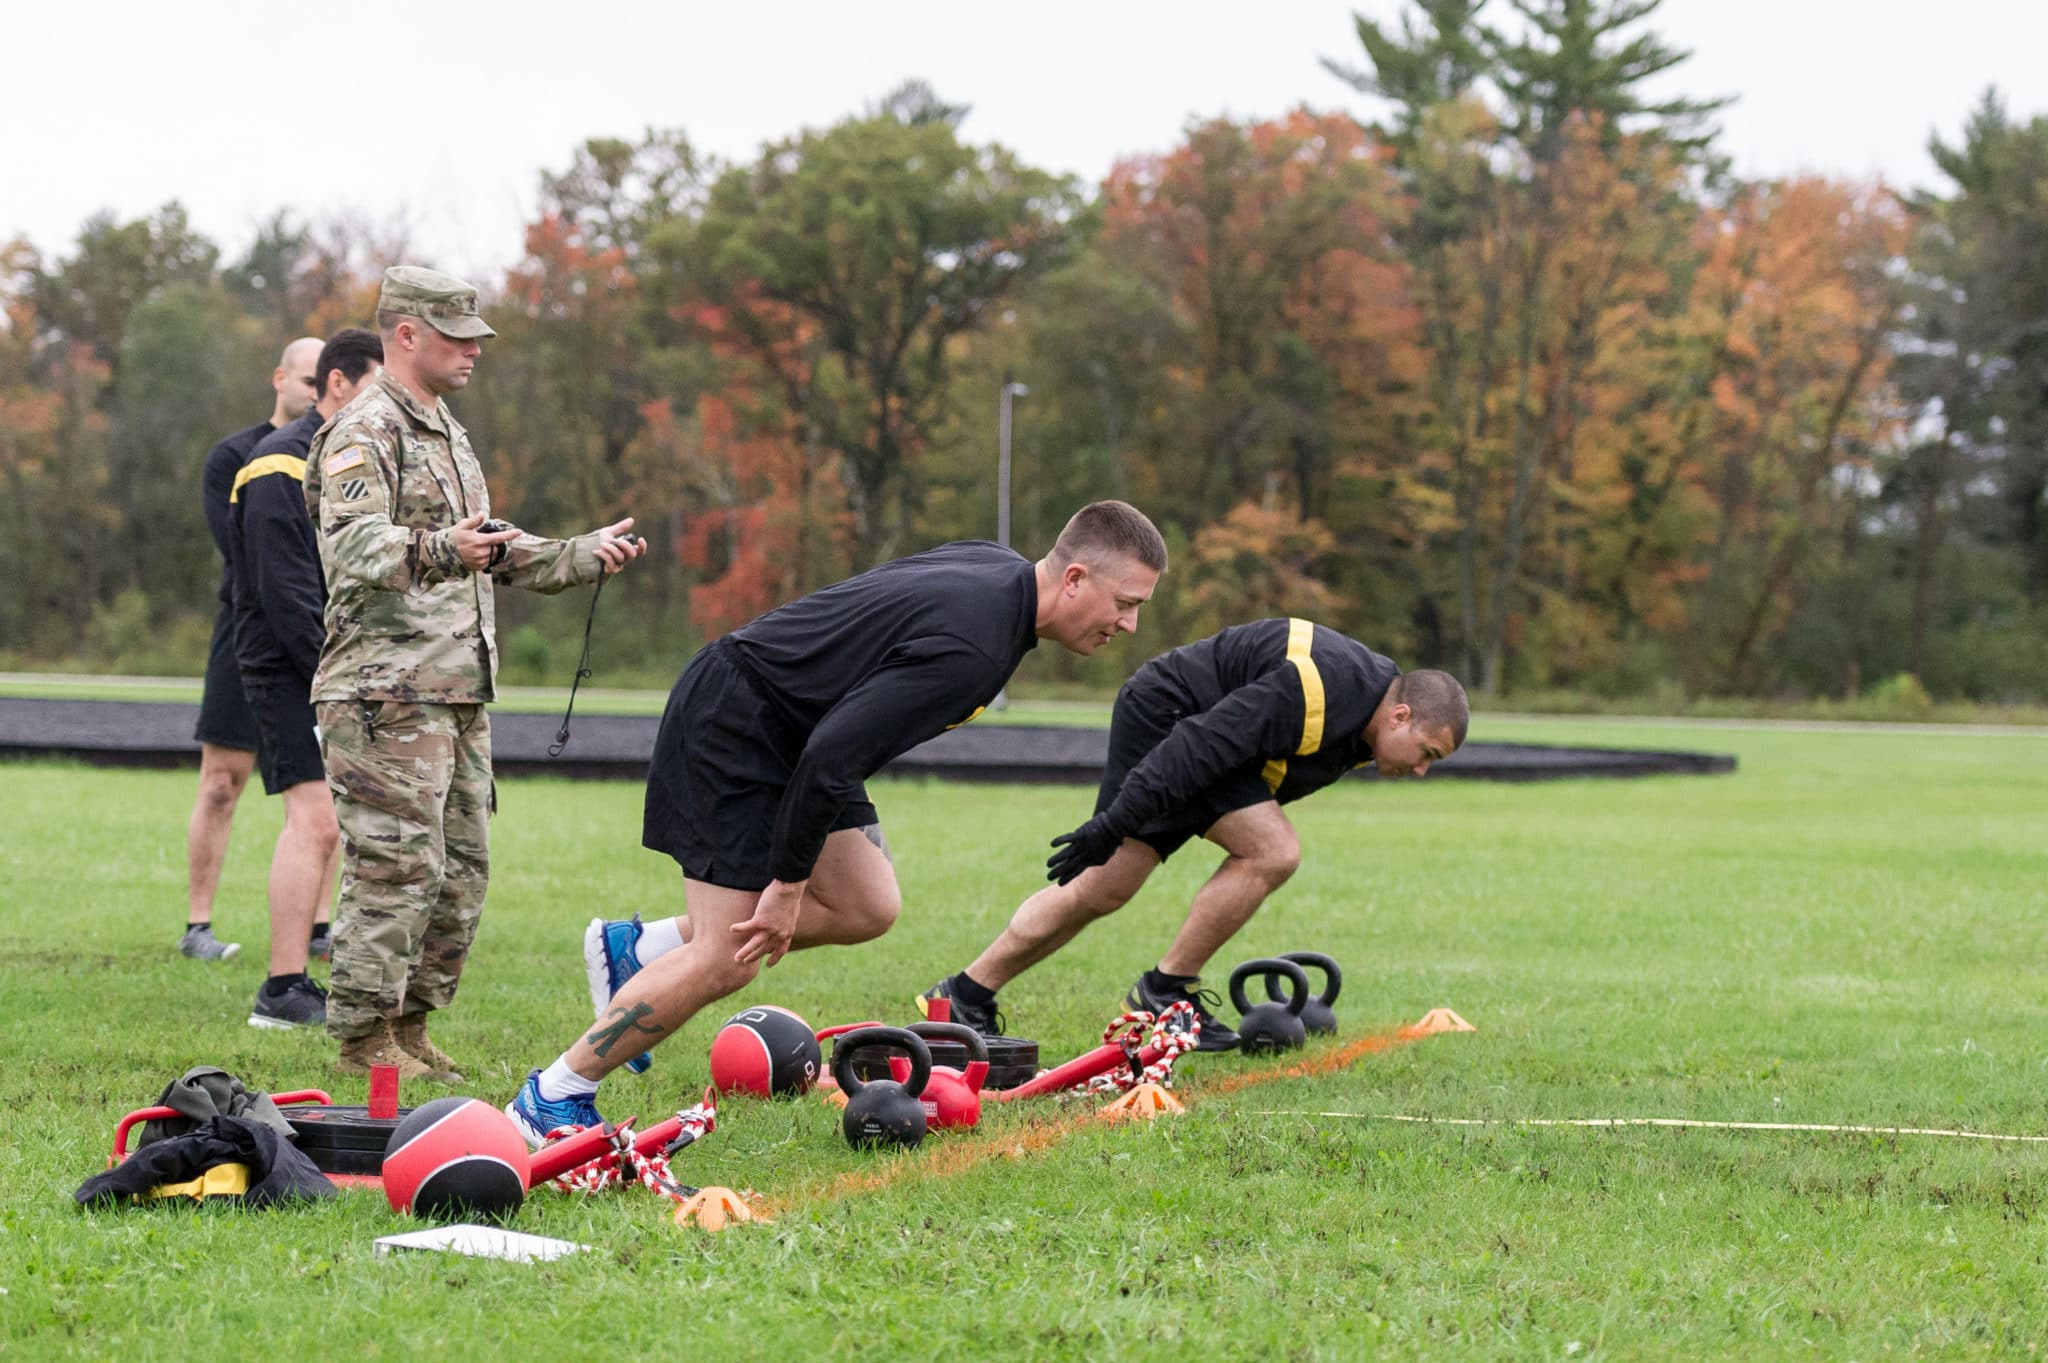 prevent ACFT injuries